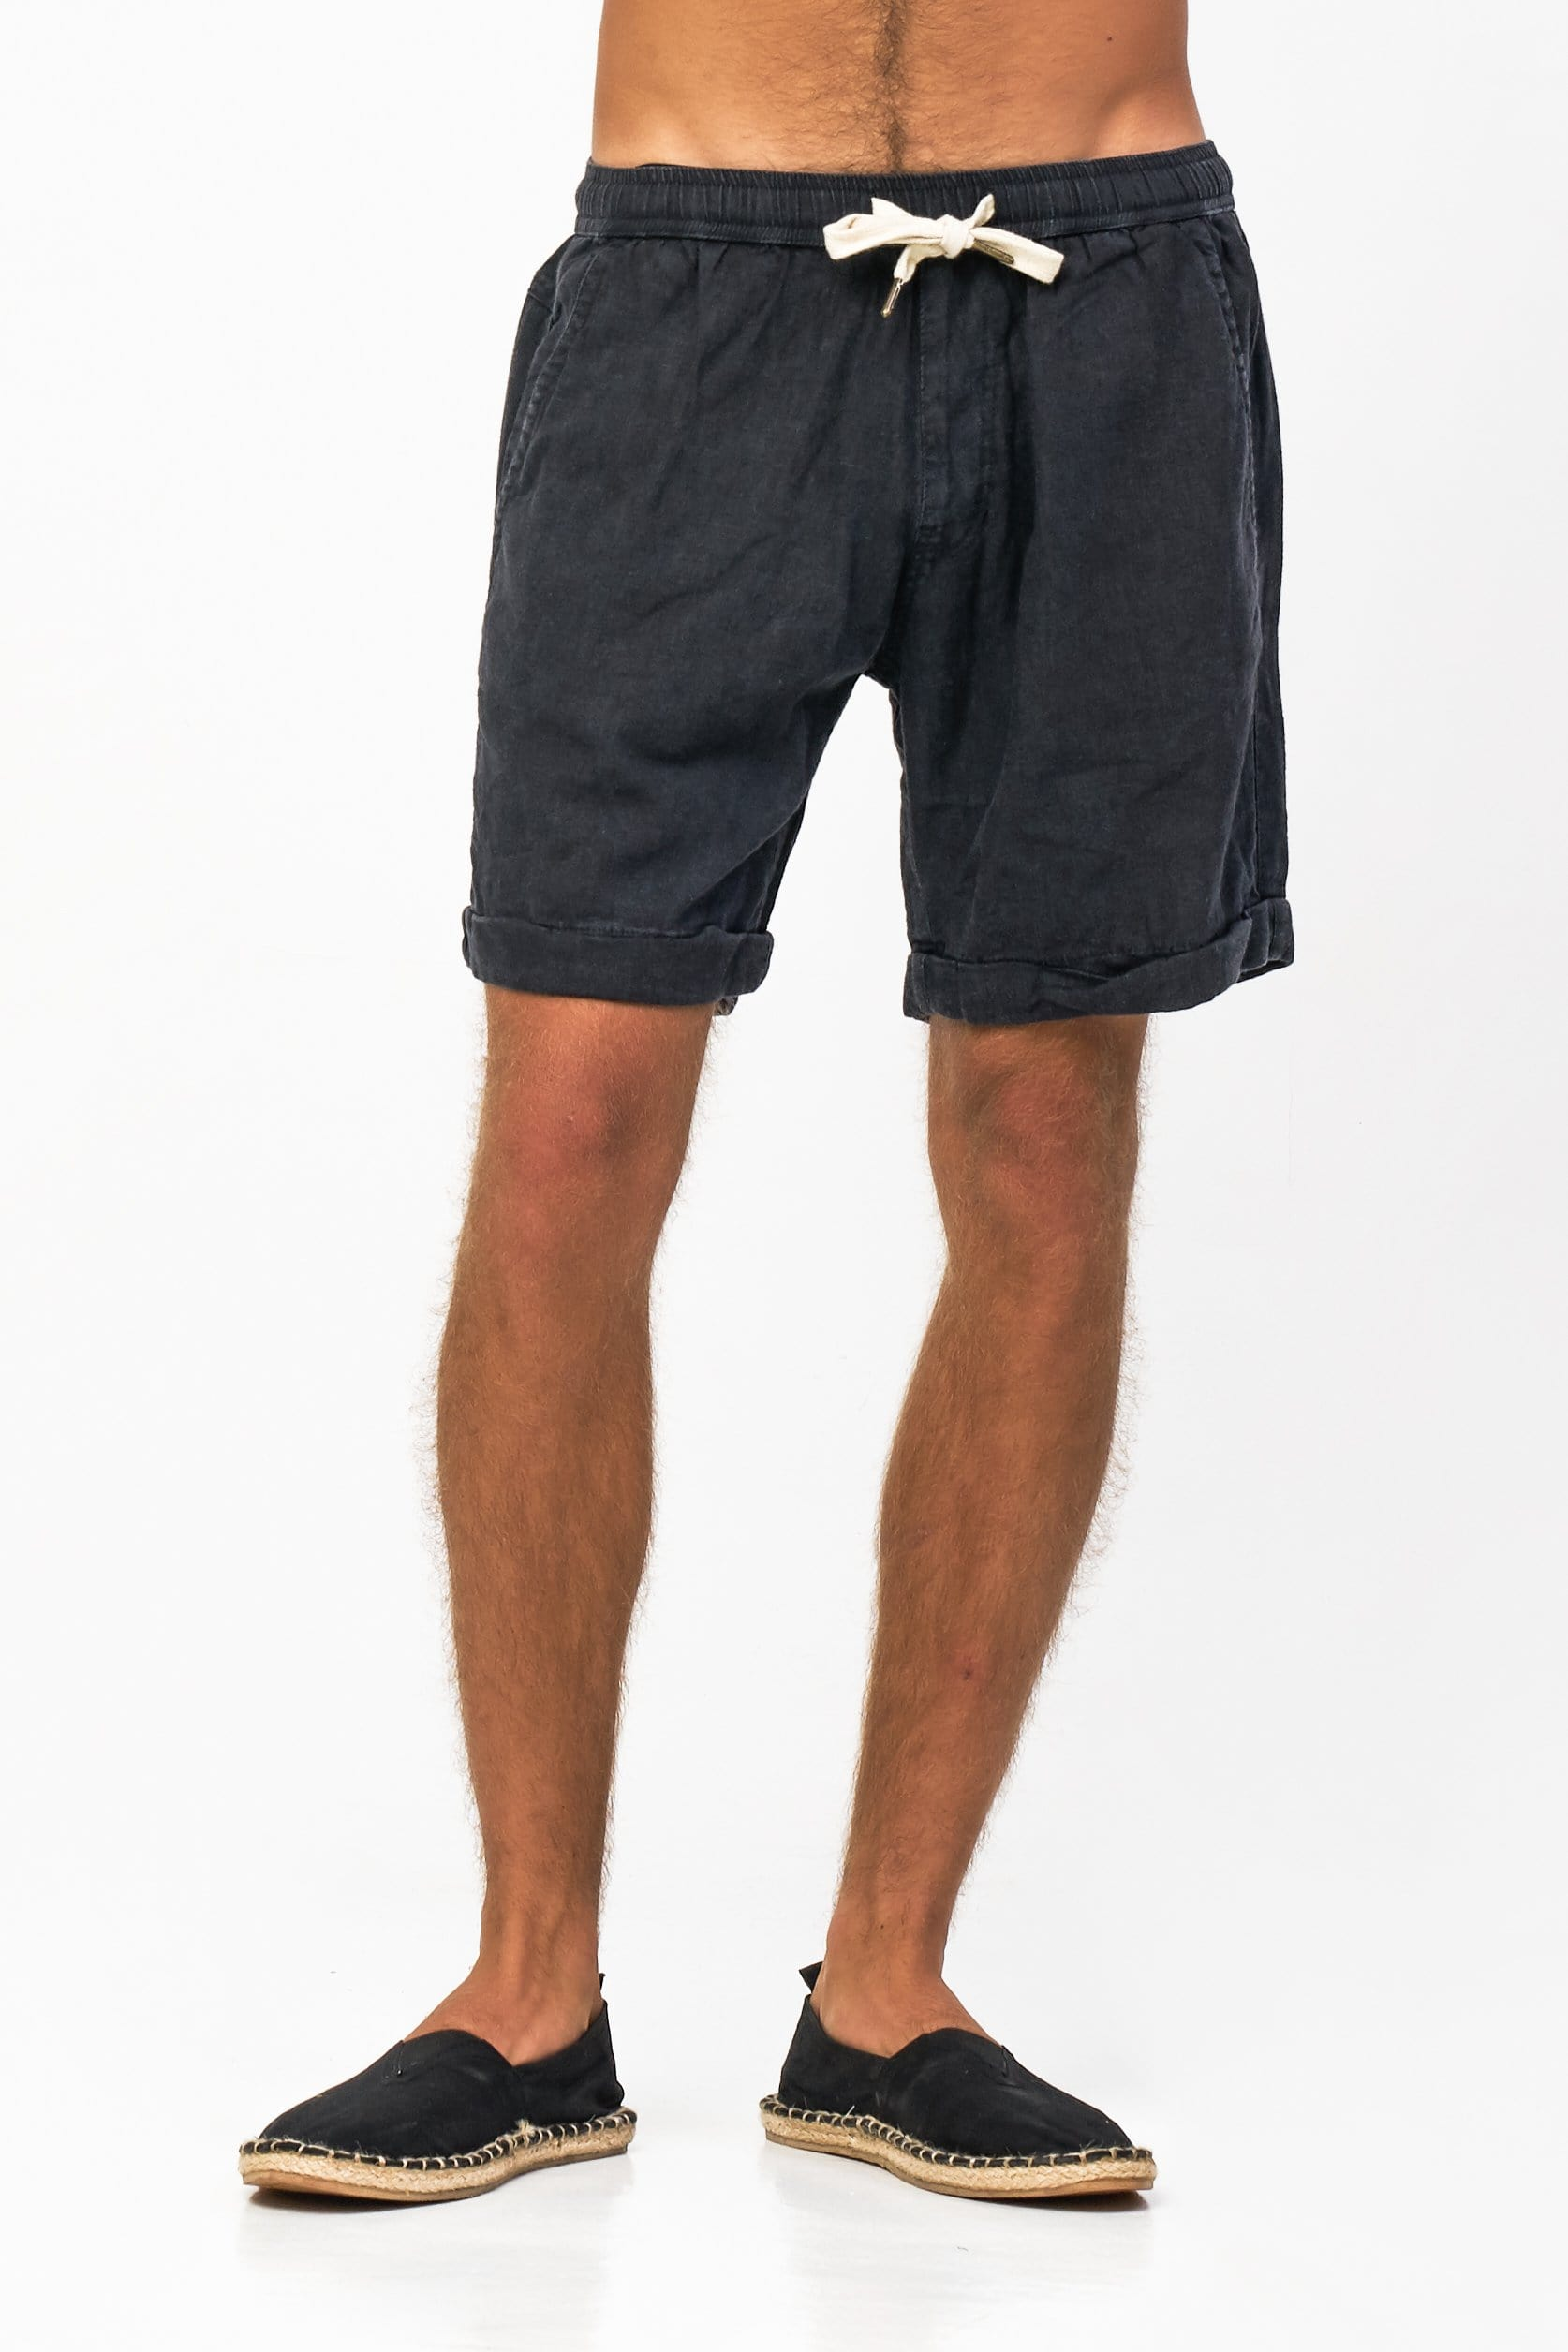 Linen Short - Man Short - LOST IN PARADISE